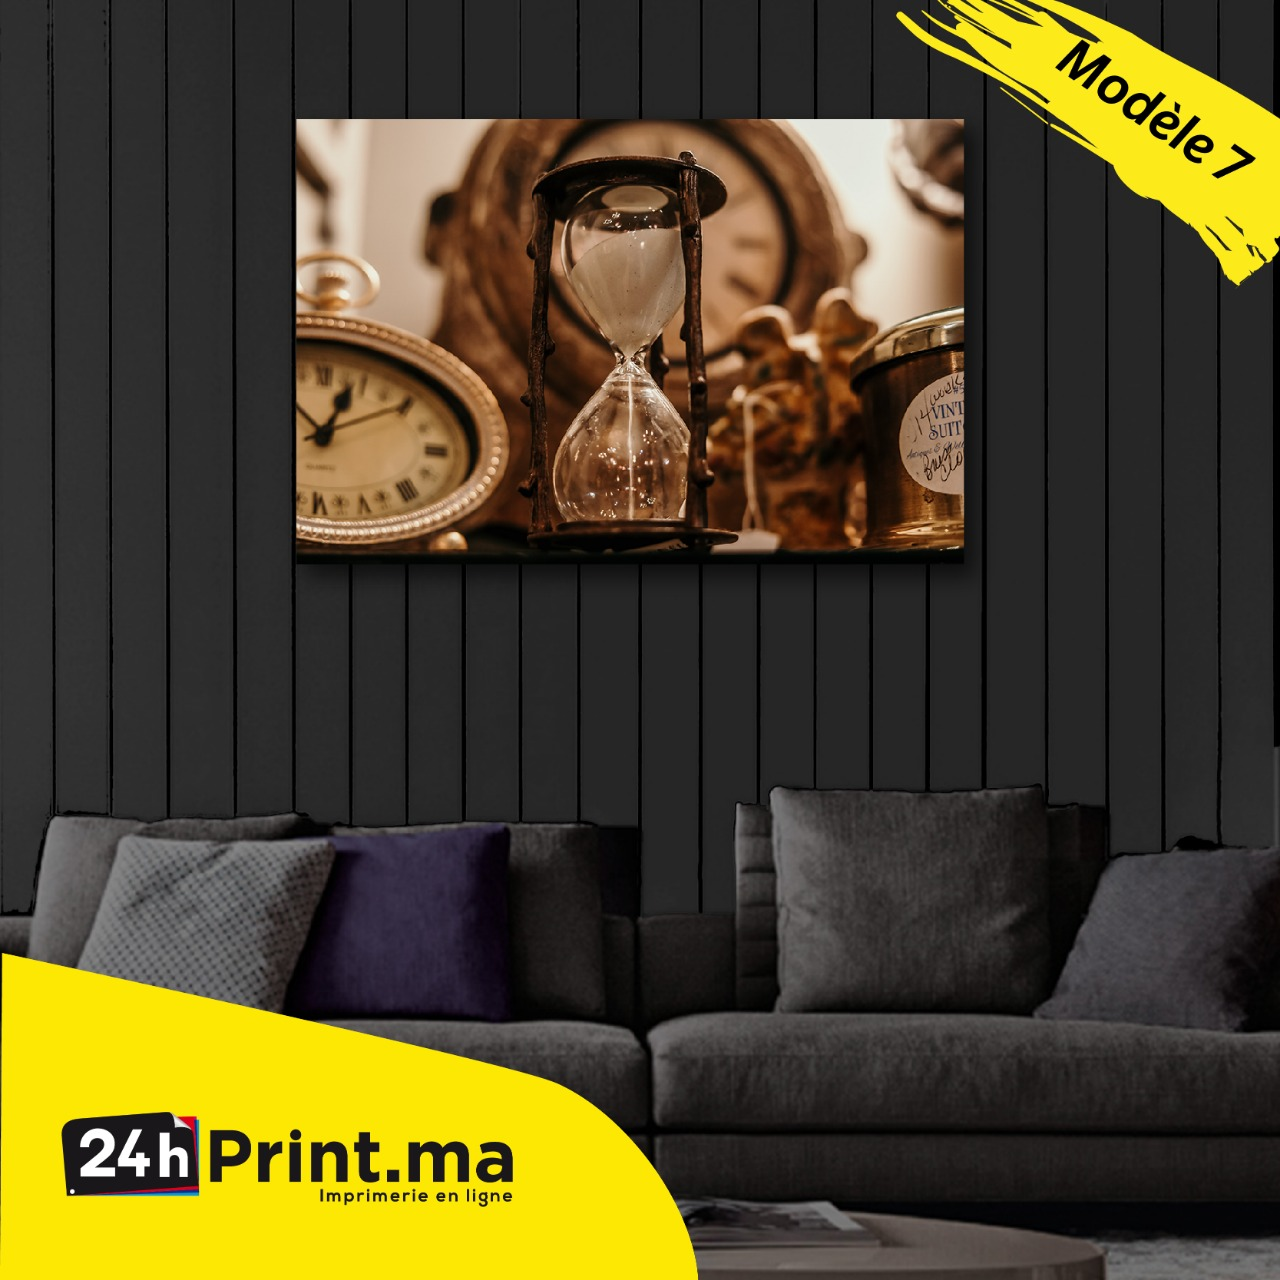 https://www.24hprint.ma/images/products_gallery_images/717.jpeg